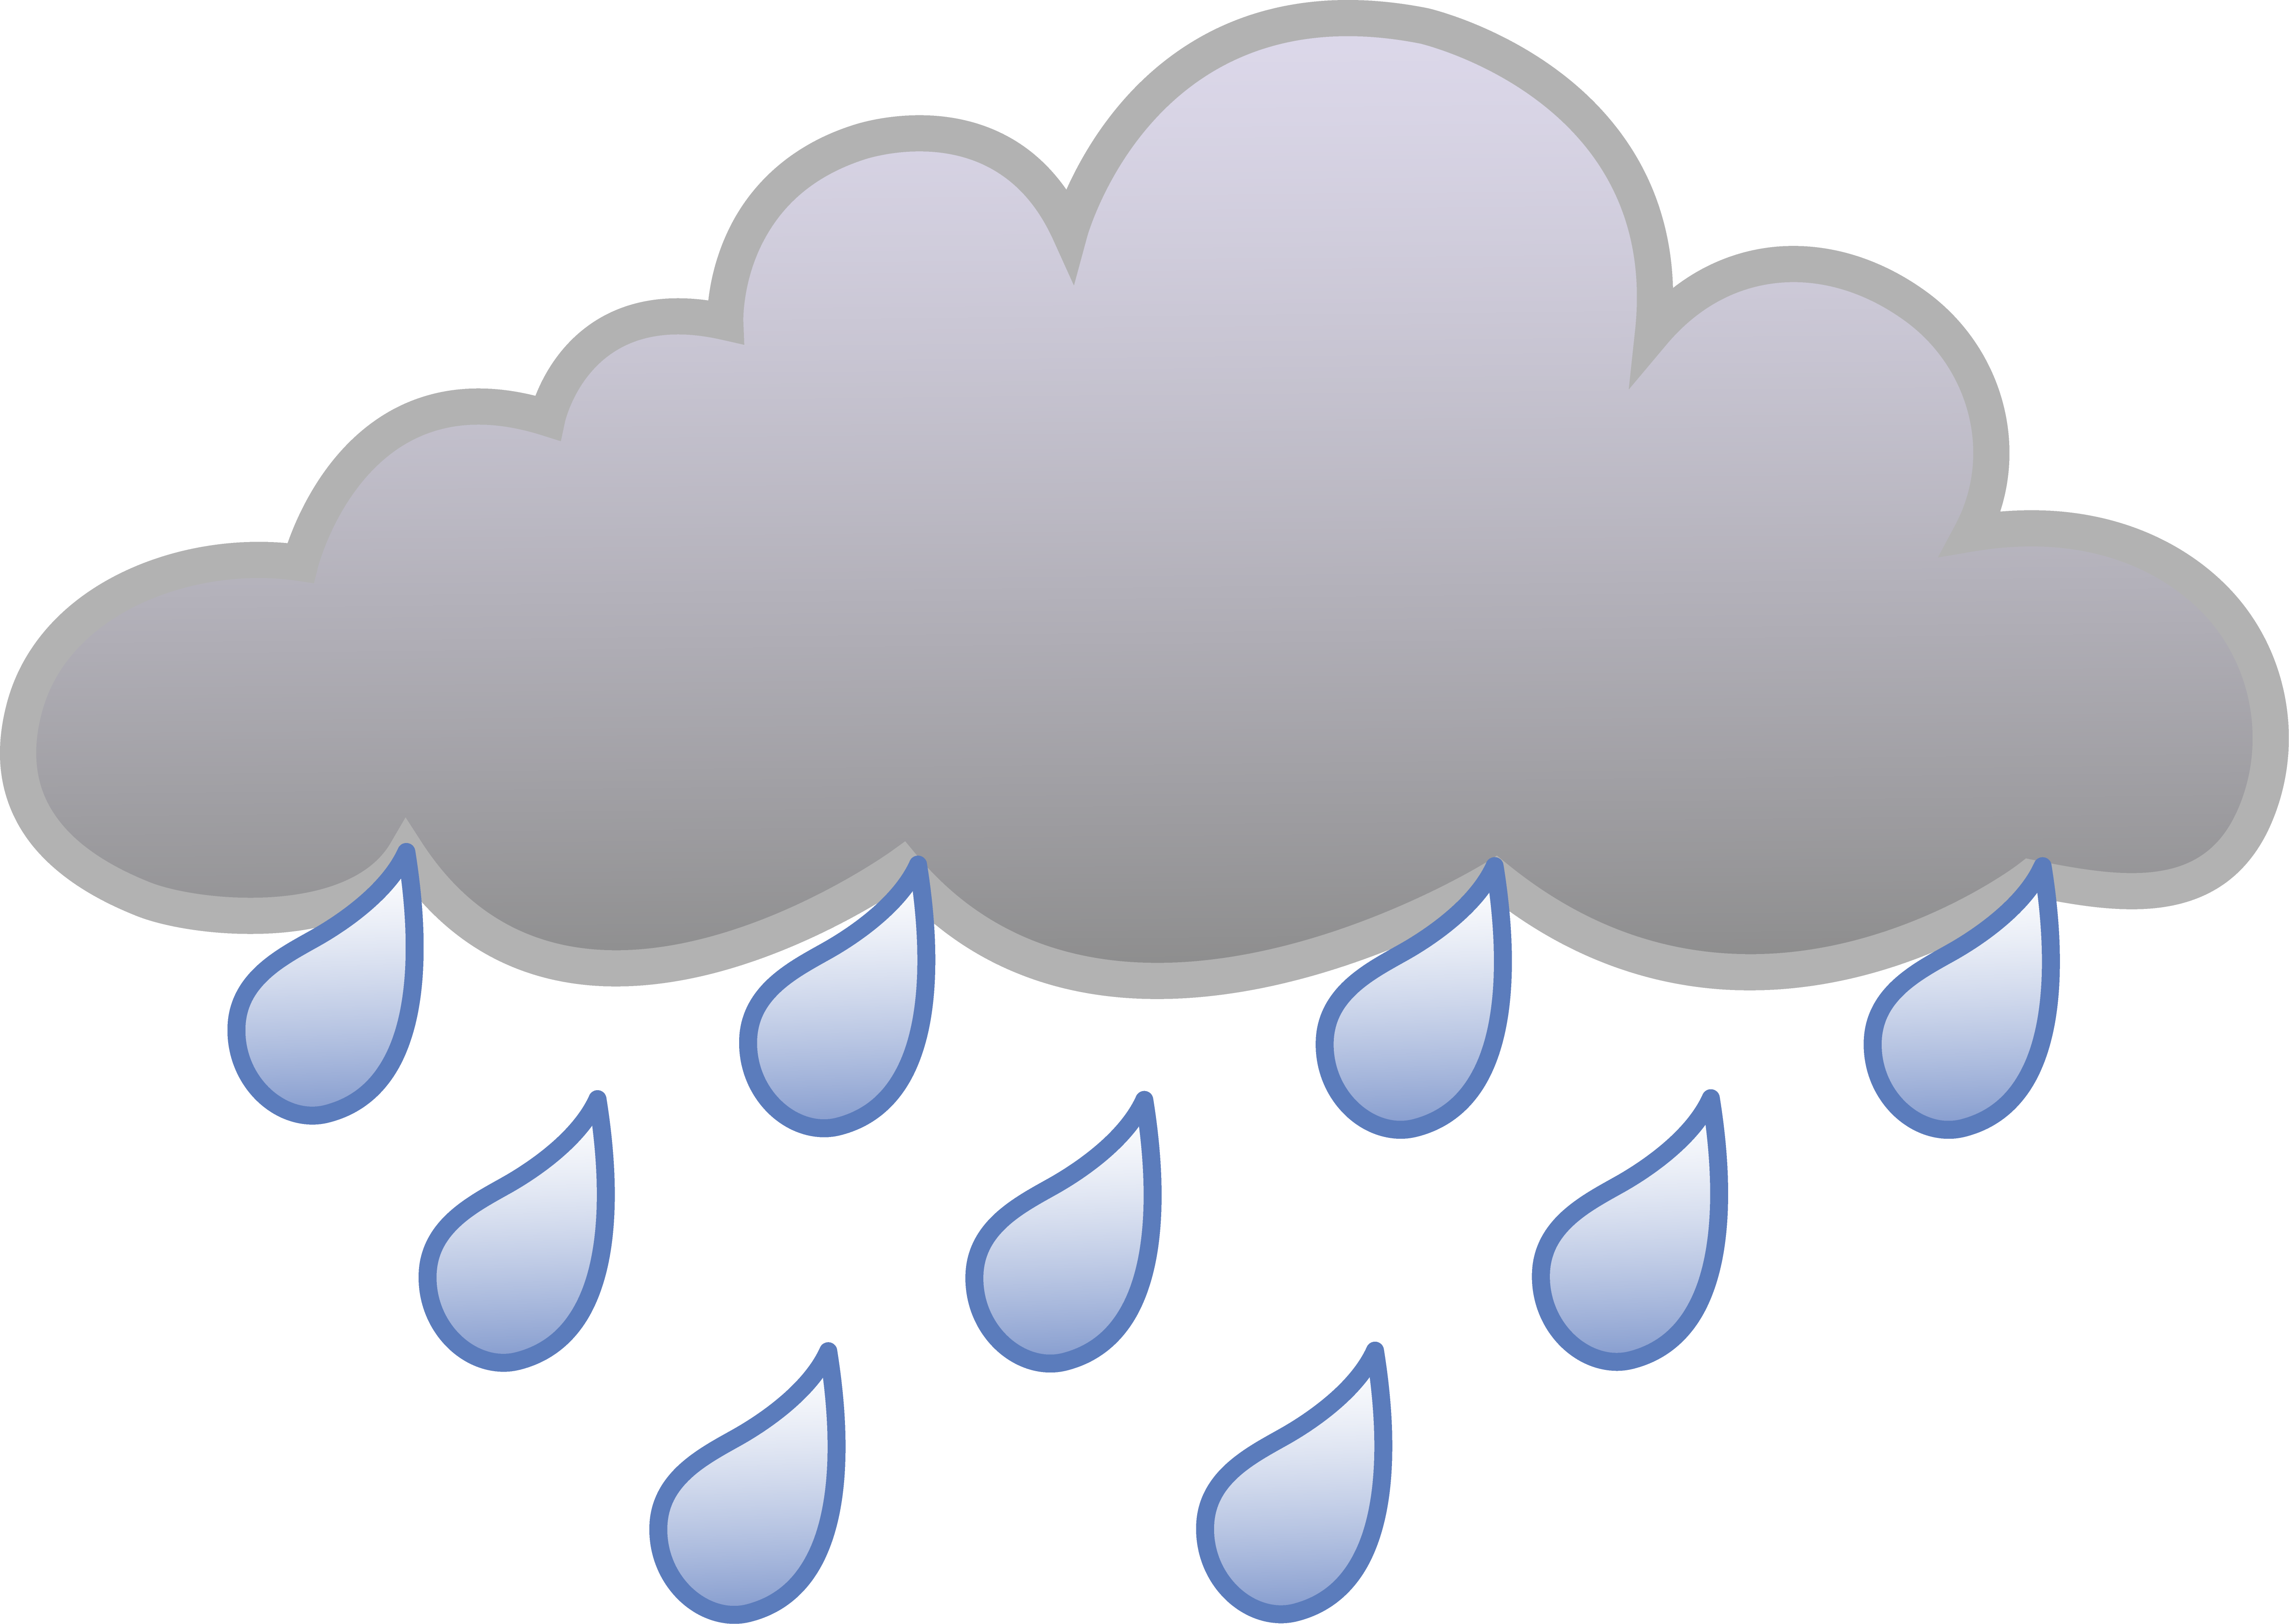 Rain and cloud collection. Wet clipart transparent